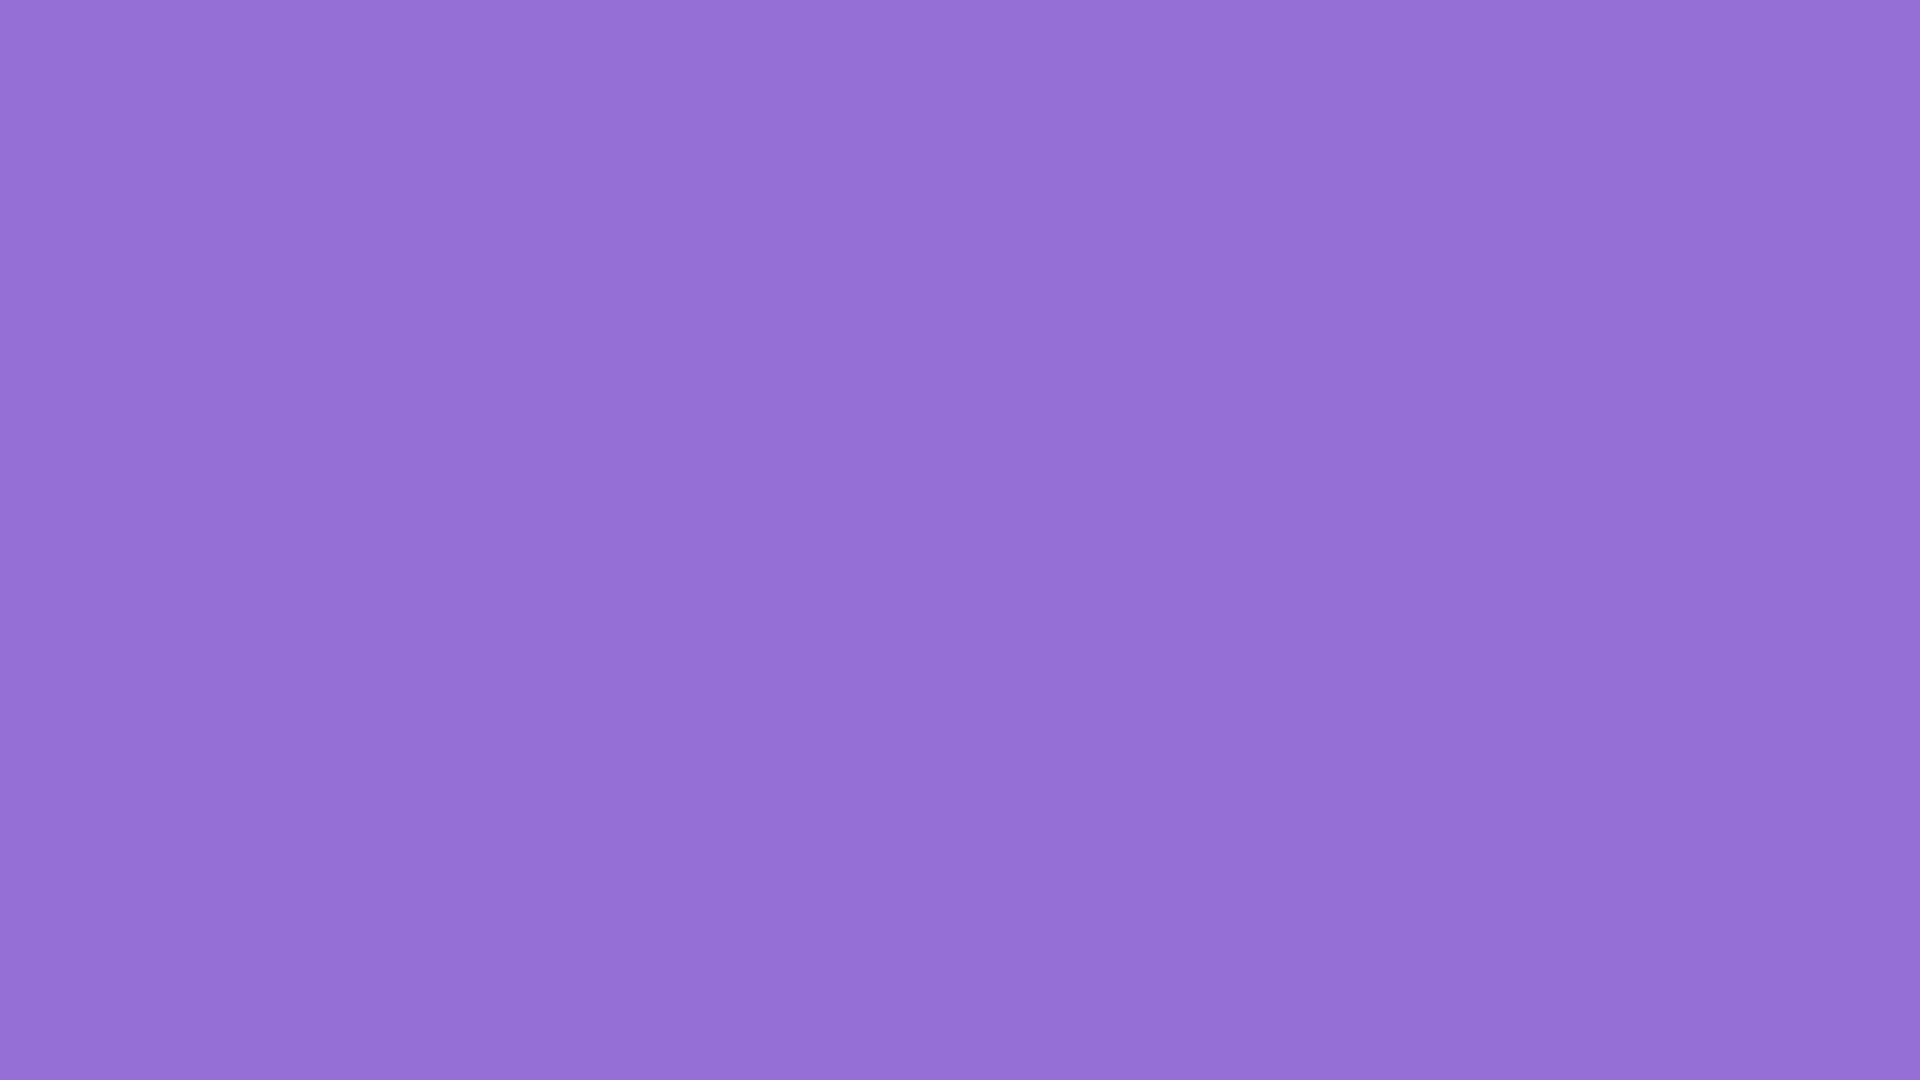 Solid Dark Purple Background Background 1 HD Wallpapers Hdimges 1920x1080